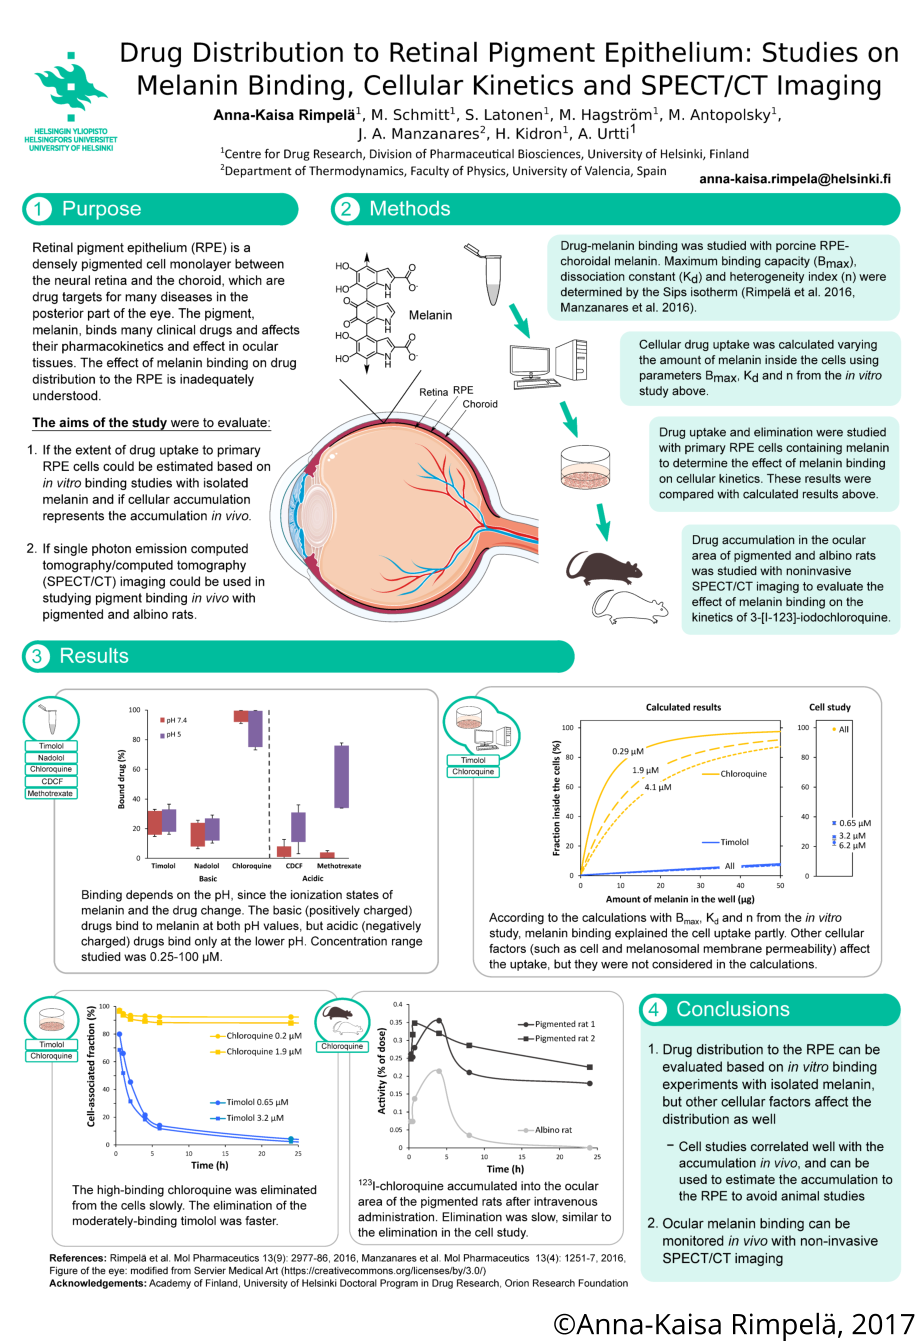 Create A Beautiful And Credible Scientific Poster